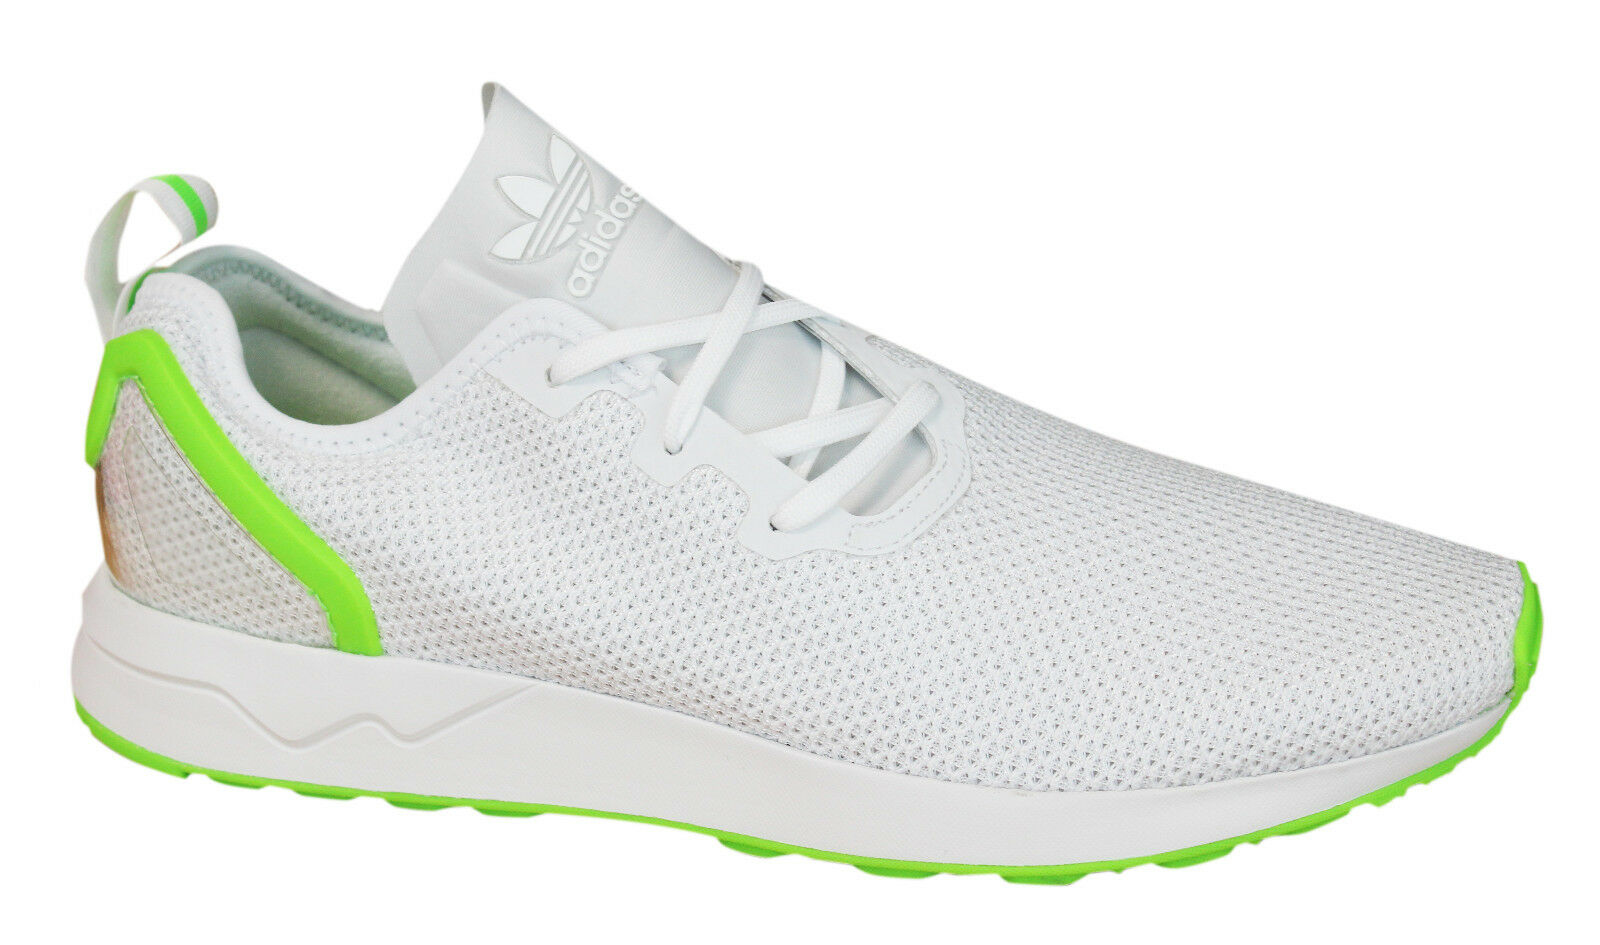 Adidas Originals ZX Flux Adv Asym Mens Trainers Lace Up shoes White AQ3166 D27